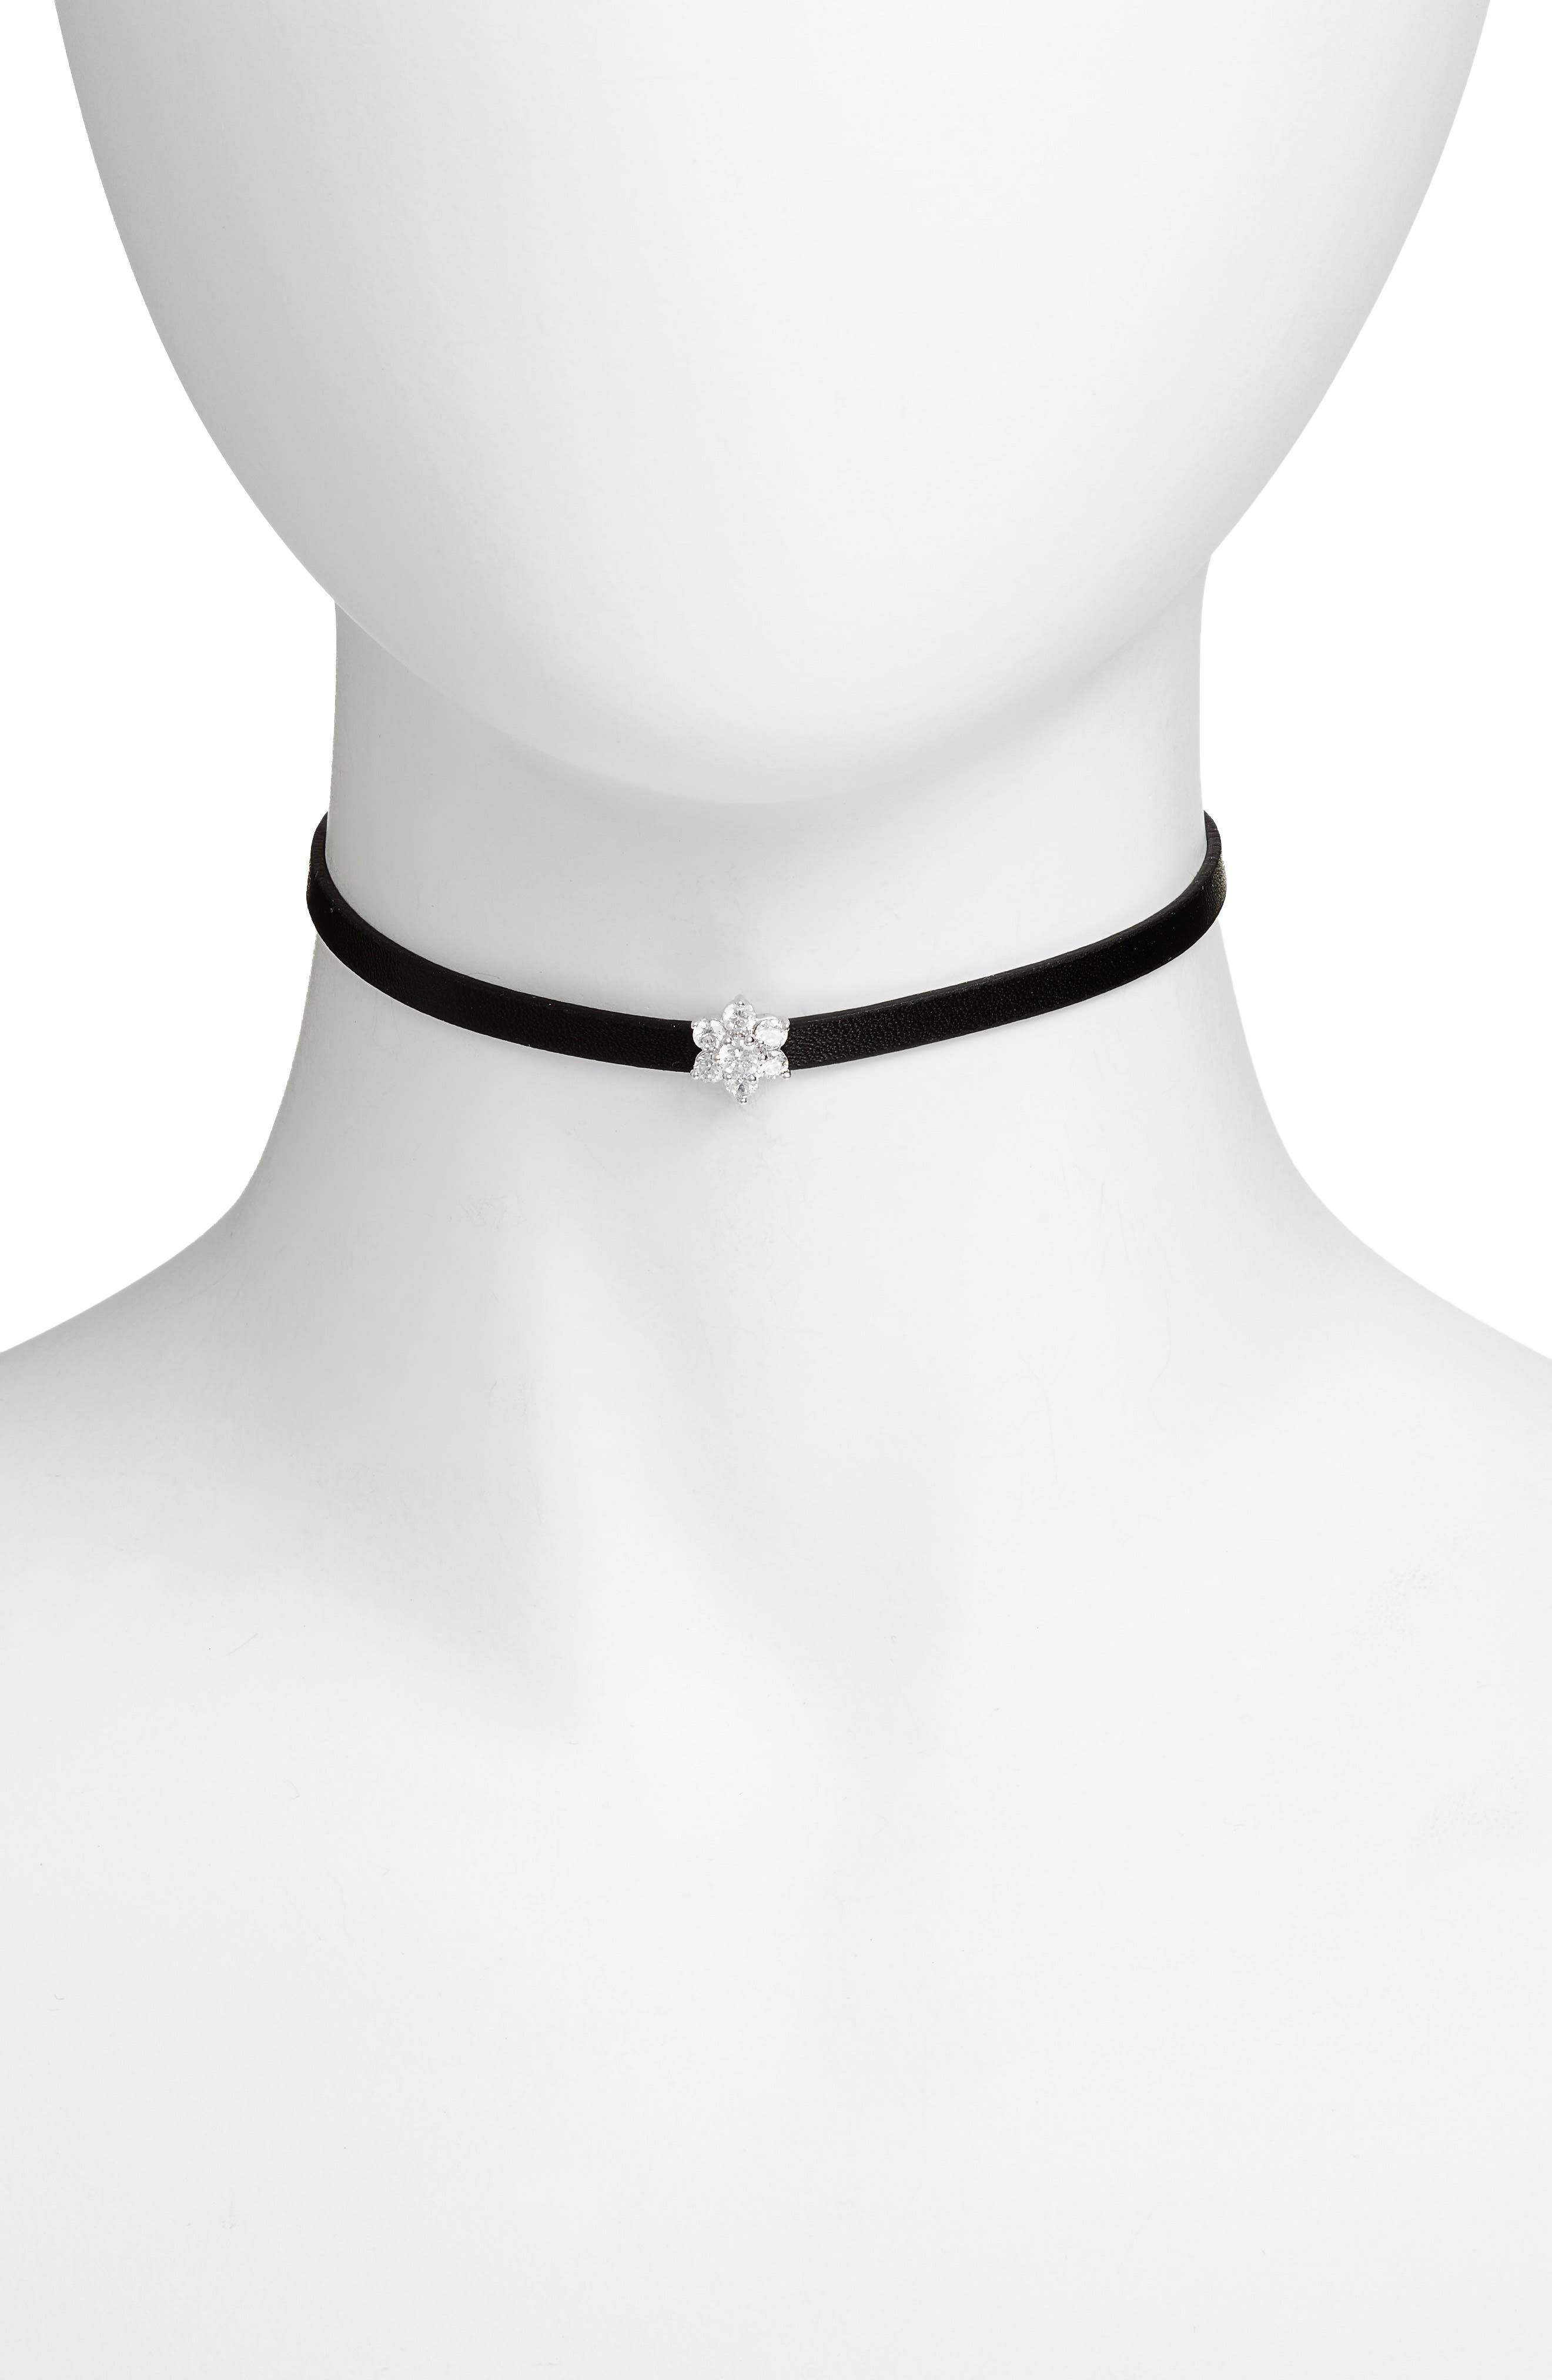 CZ BY KENNETH JAY LANE Crystal Choker